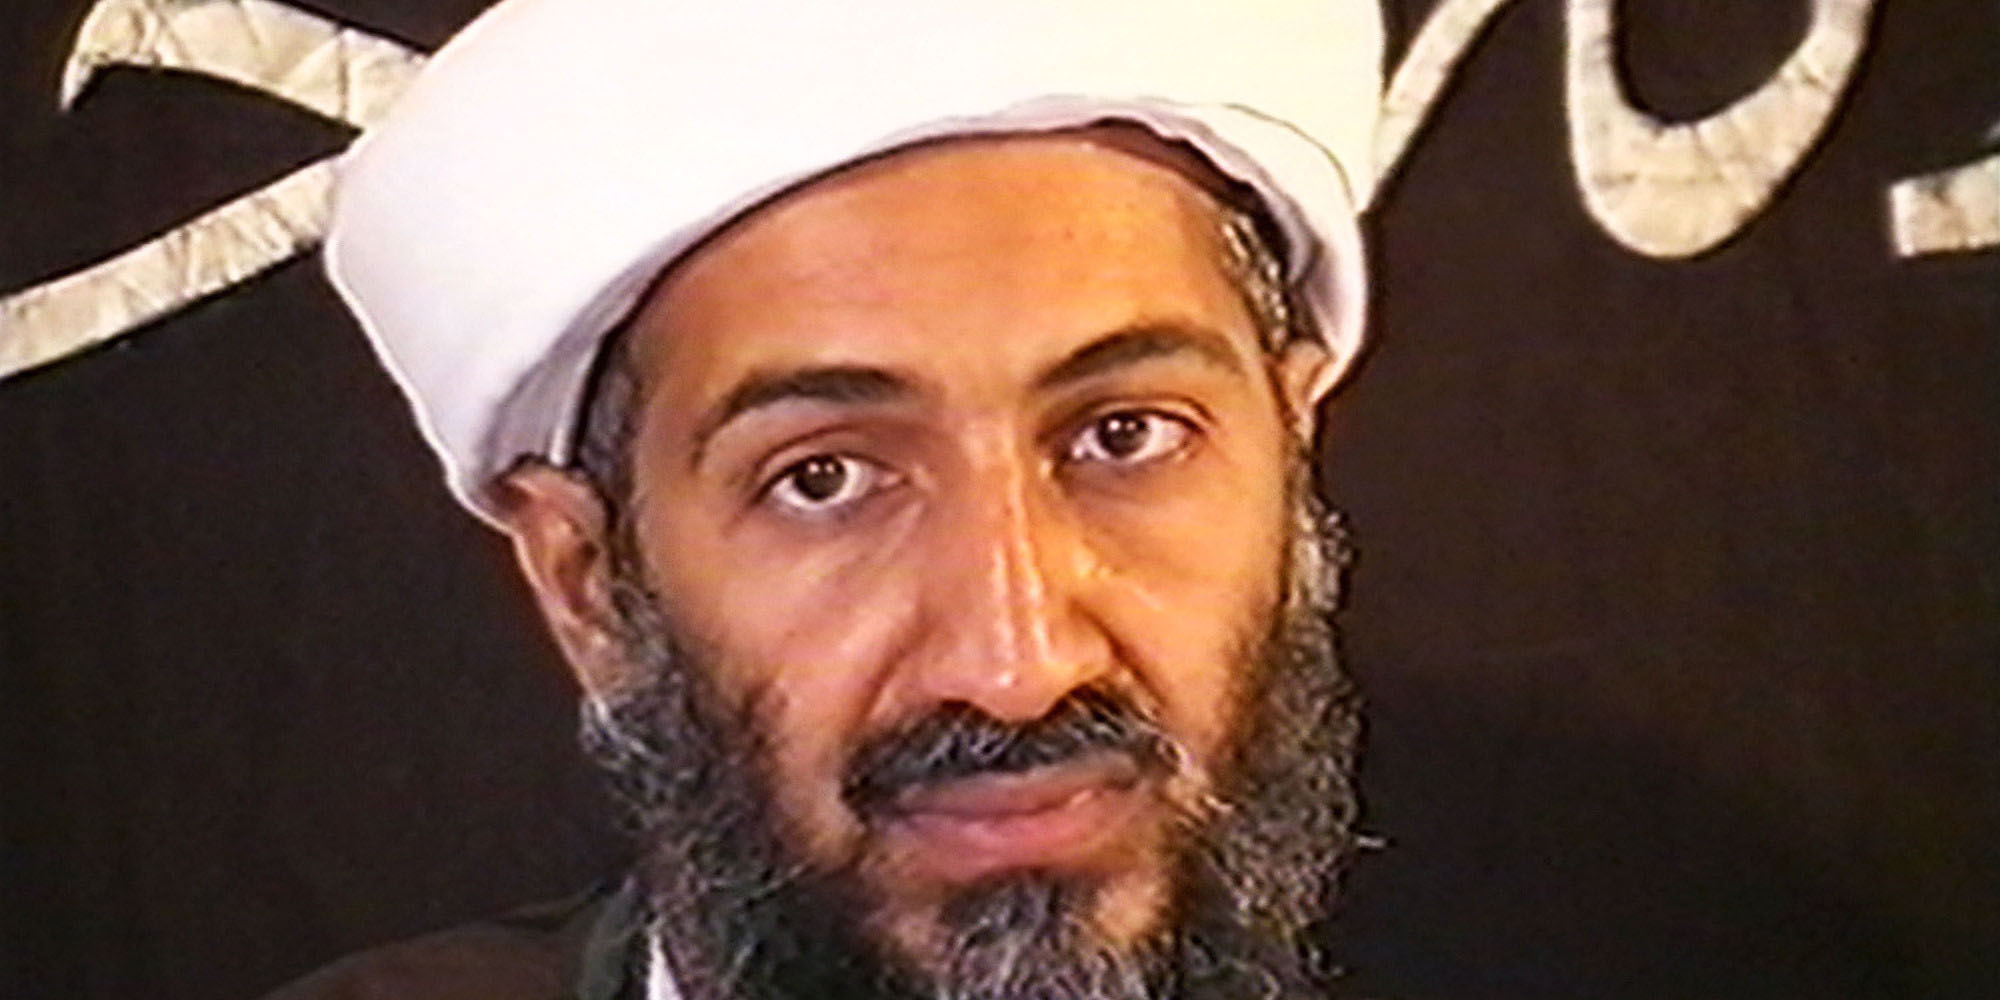 osama bin laden On this day in 2011, osama bin laden, the mastermind behind the september 11, 2001, terrorist attacks in the united states, is killed by us forces during a raid on his compound hideout in.